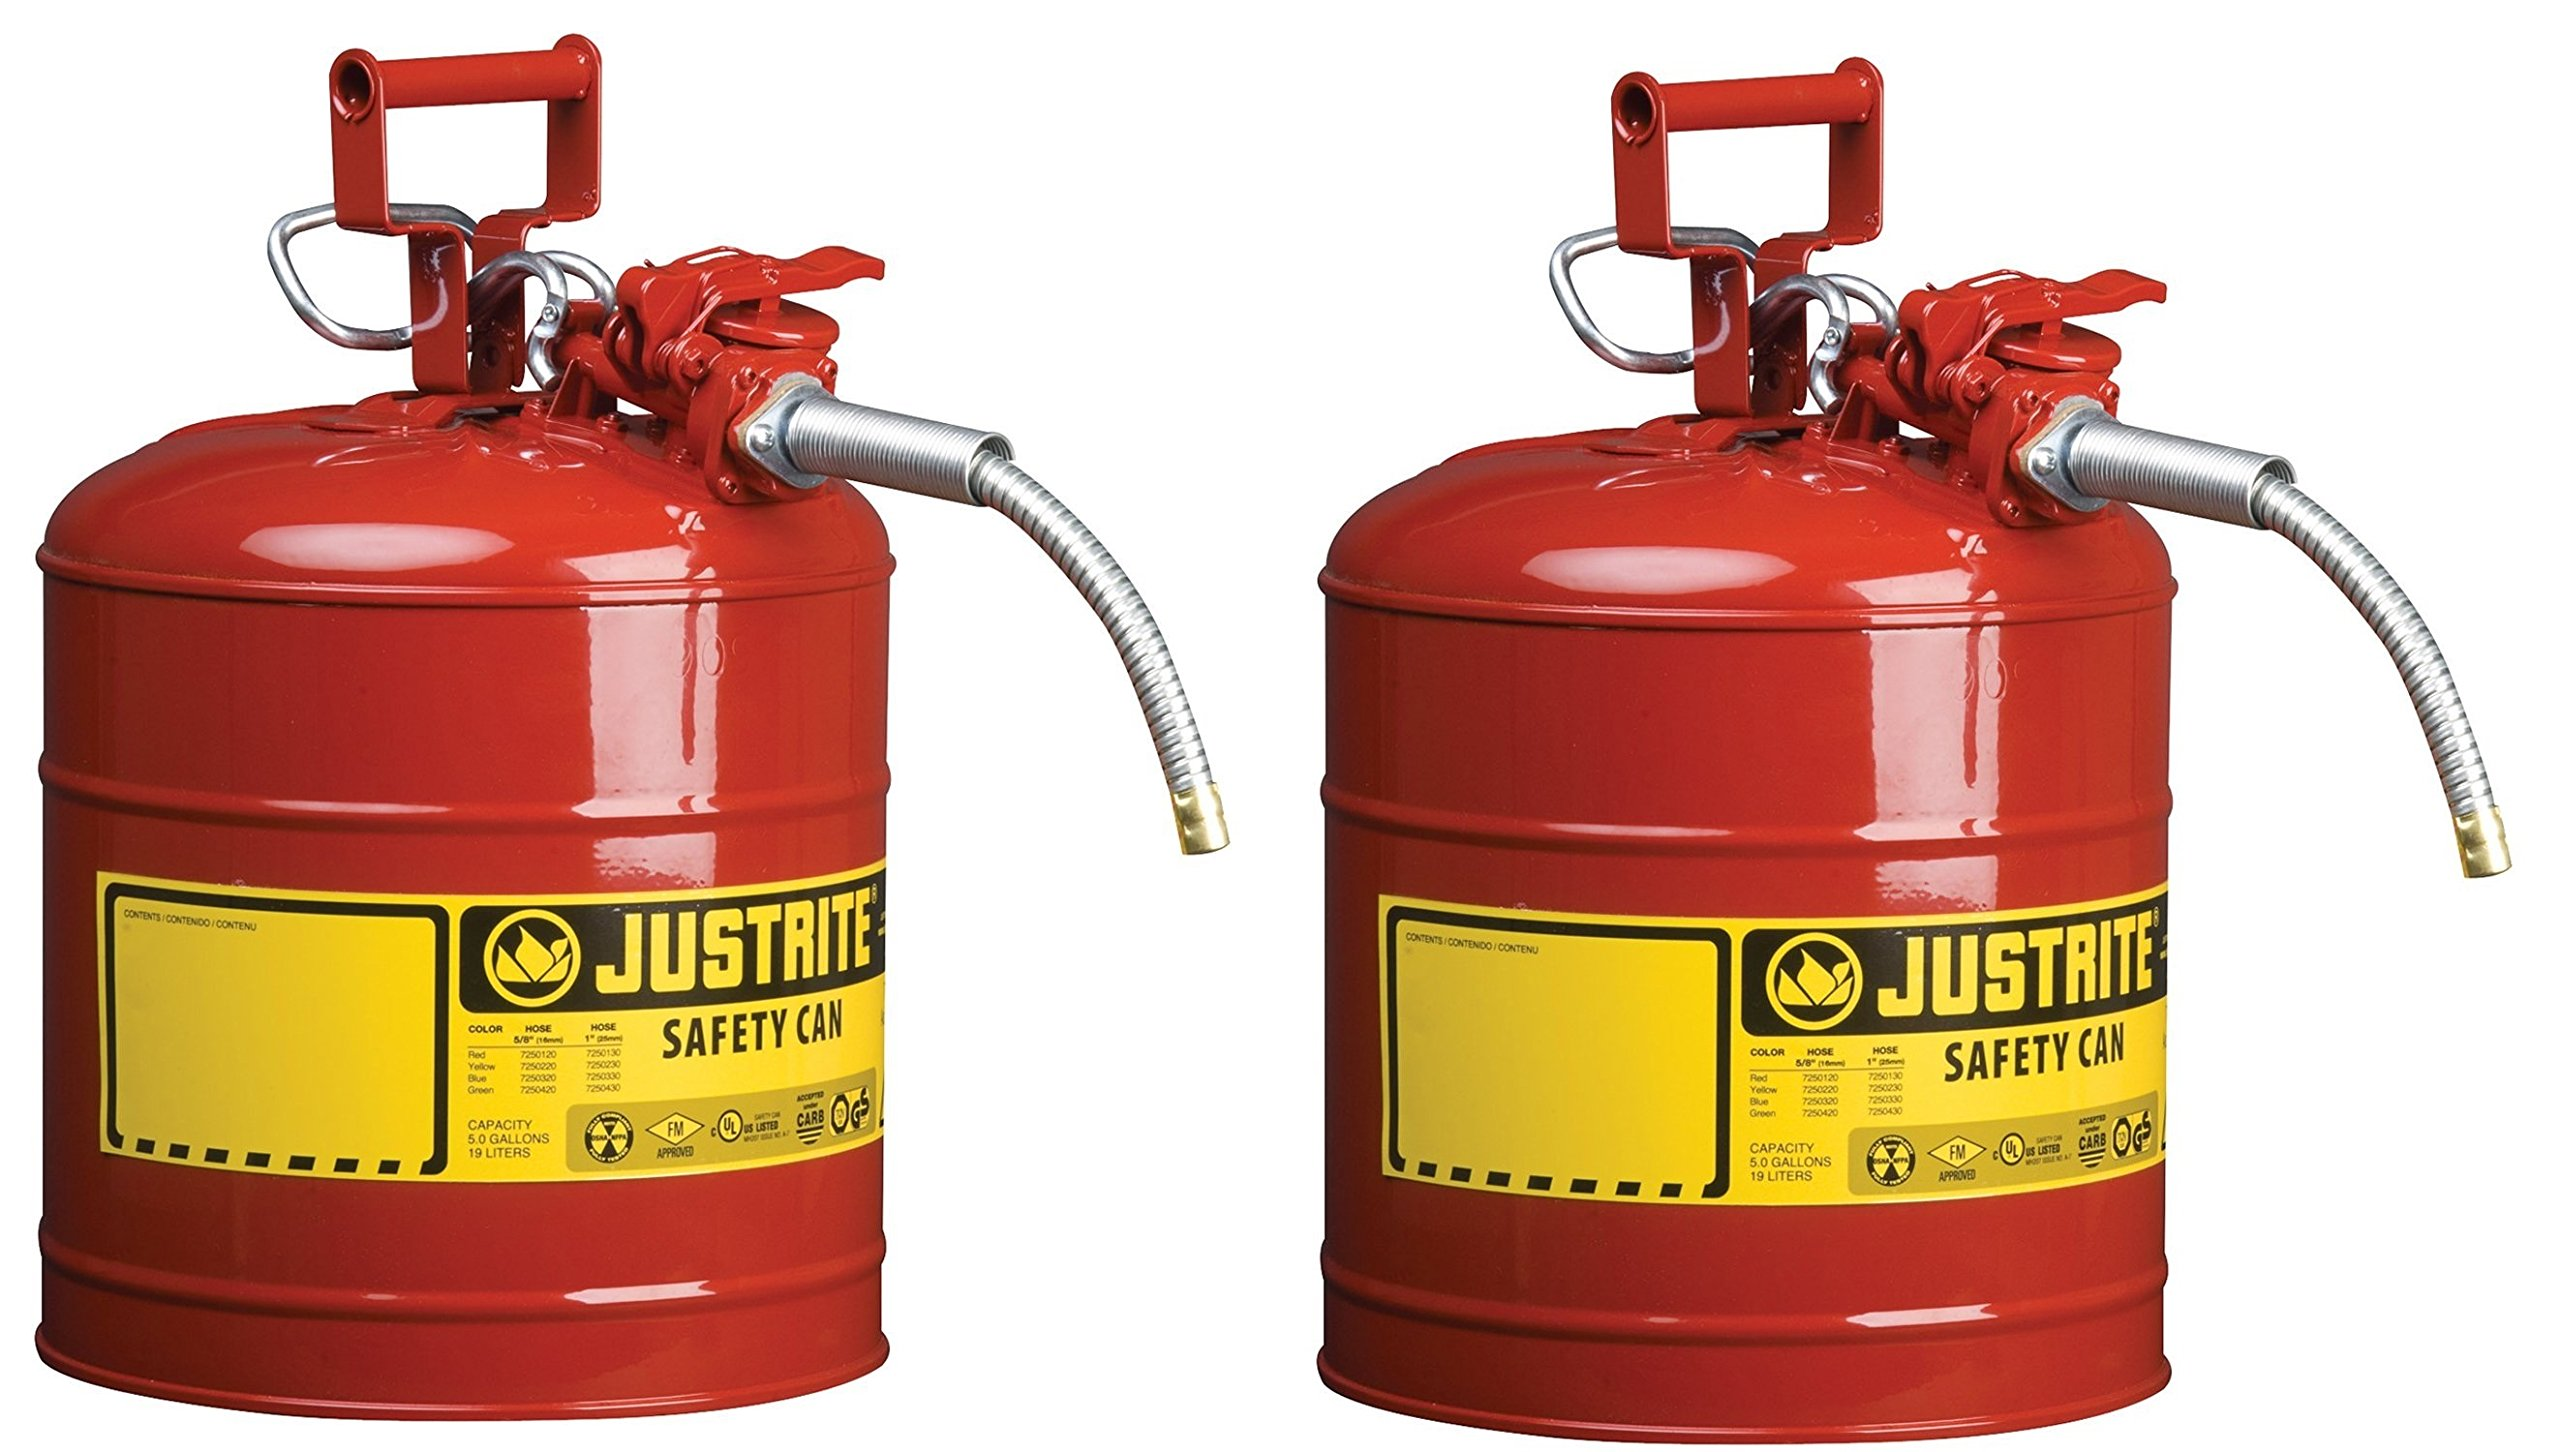 Justrite 7250120 AccuFlow 5 Gallon, 11.75'' OD x 17.50'' H Galvanized Steel Type II Red Safety Can With 5/8'' Flexible Spout (Pack of 2)